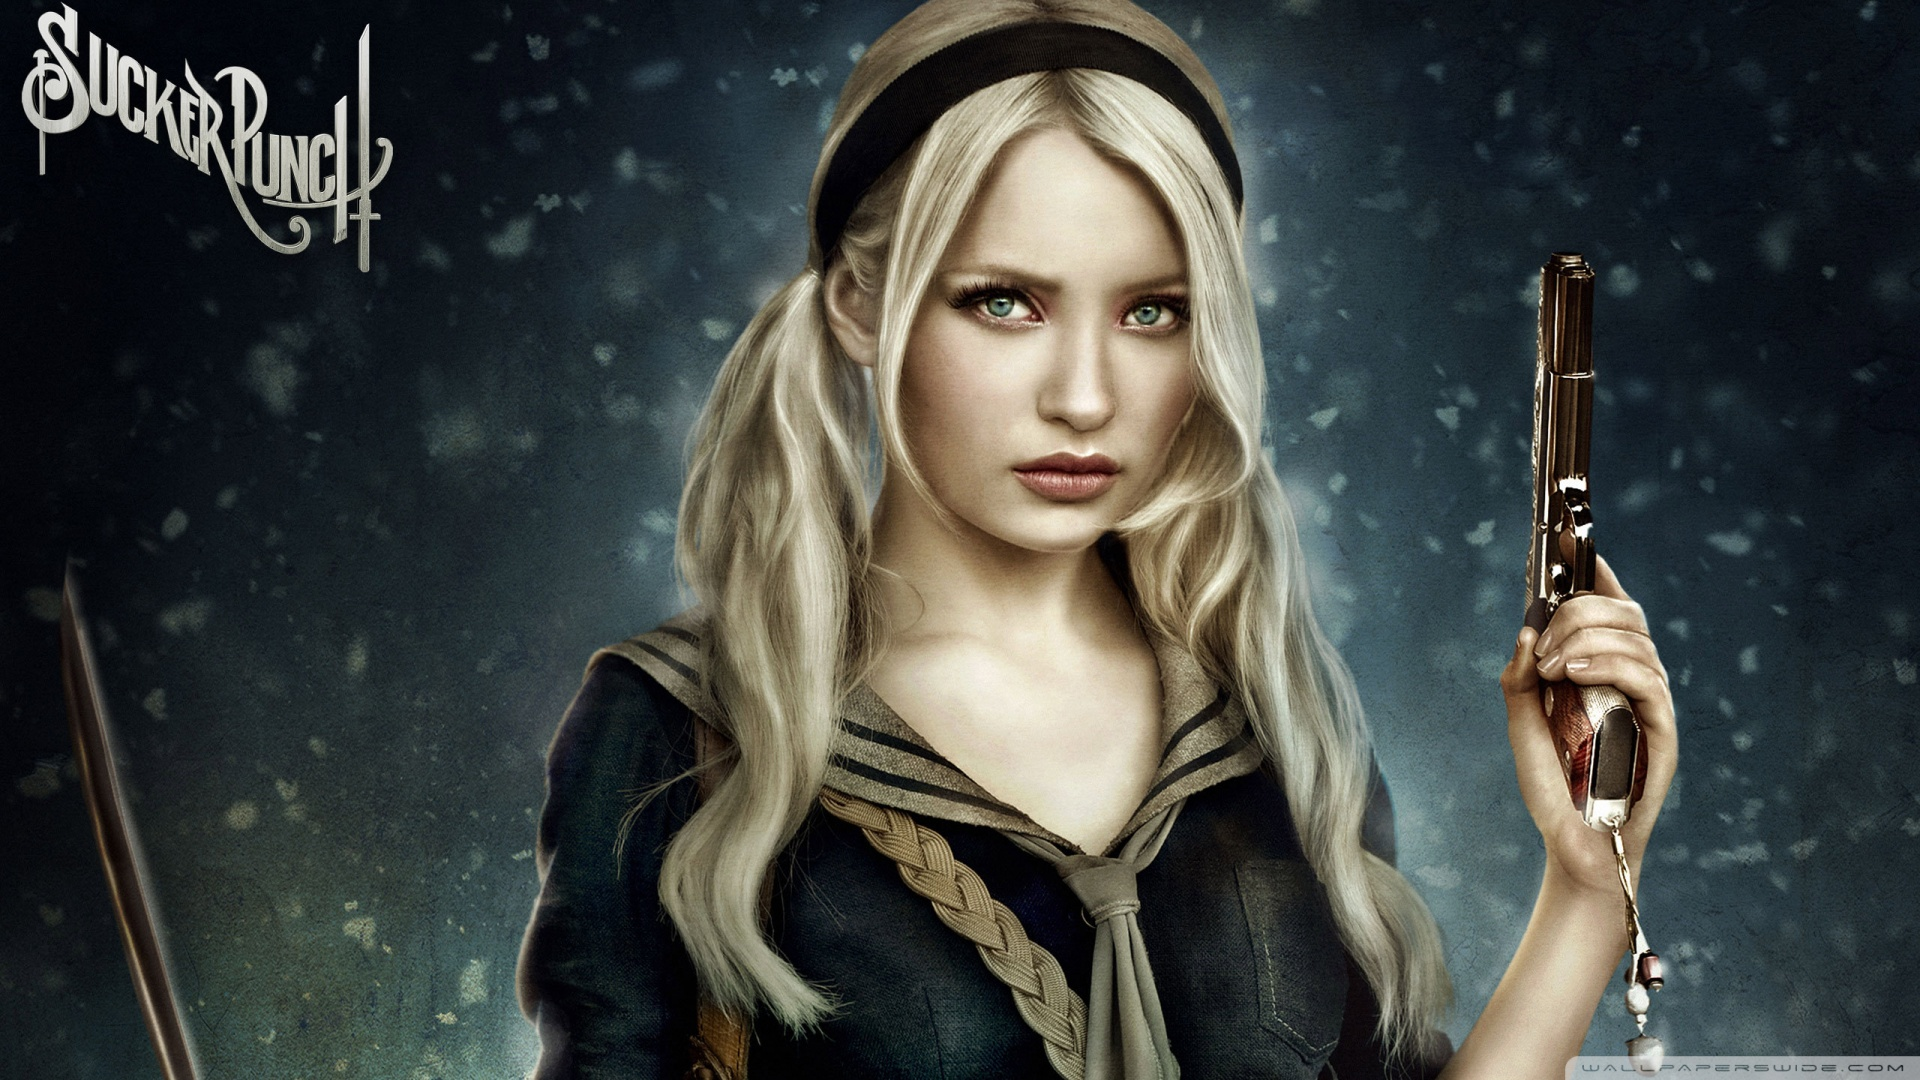 1920x1080 - Emily Browning Wallpapers 14